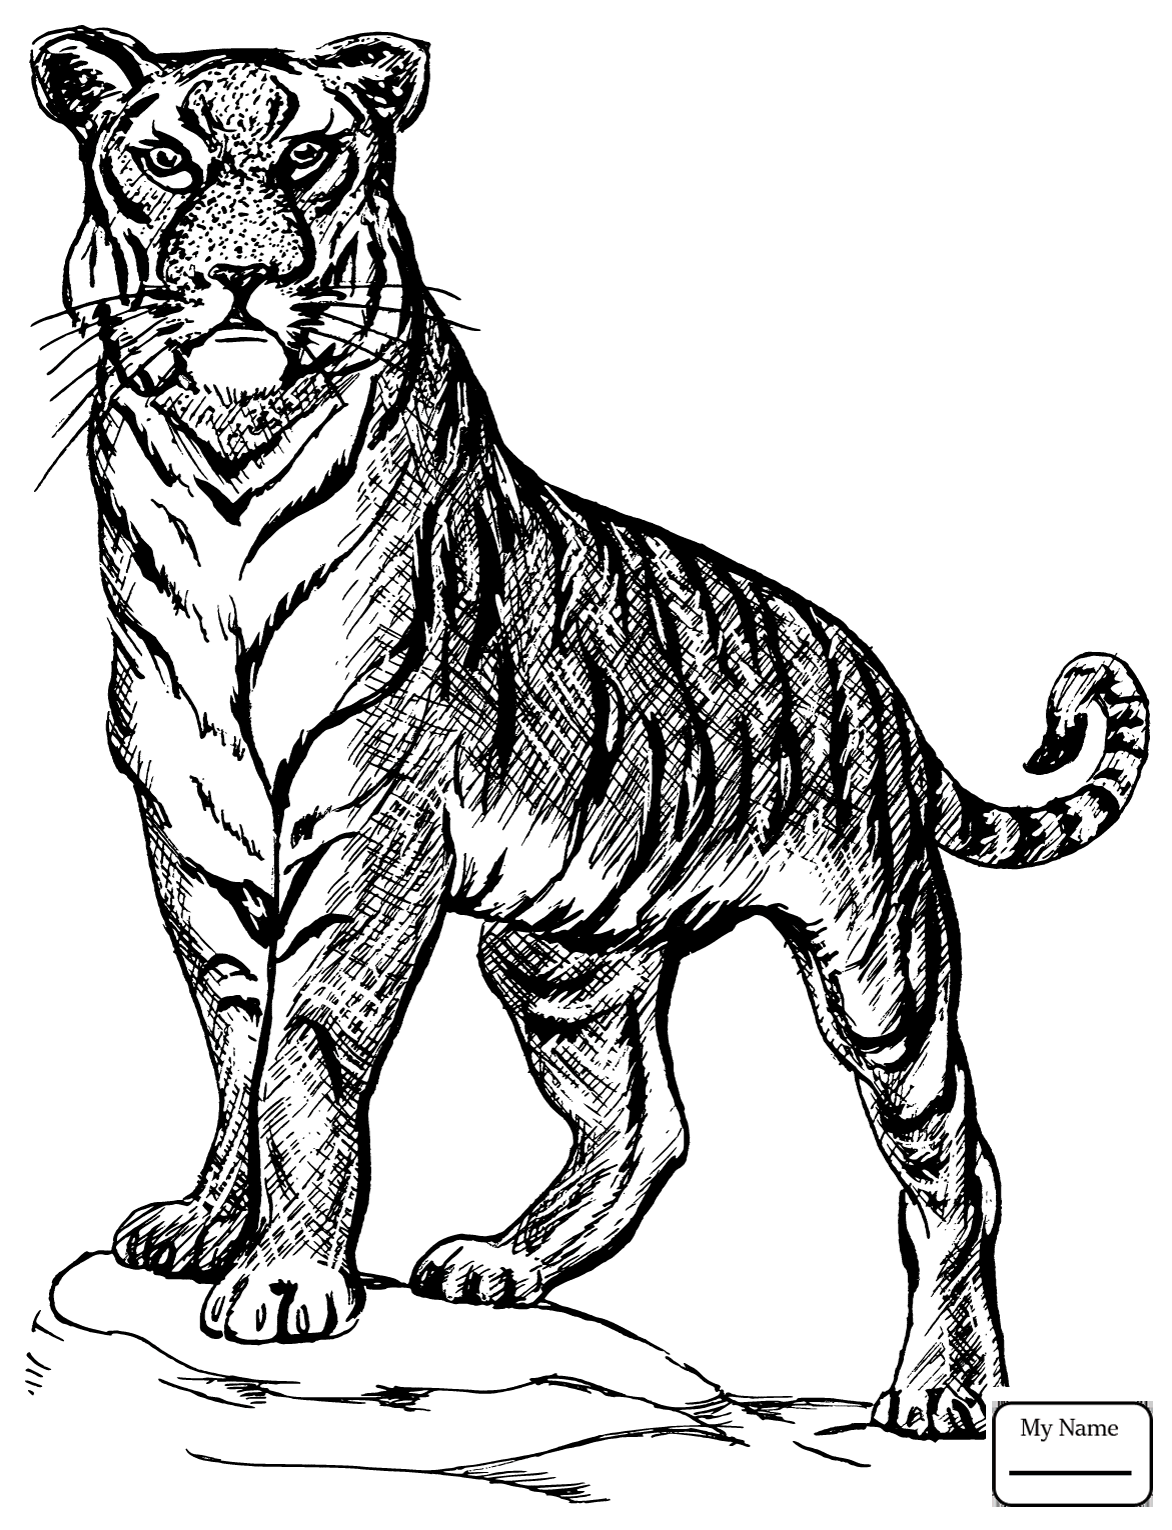 coloring page tiger baby tiger coloring pages to download and print for free tiger page coloring